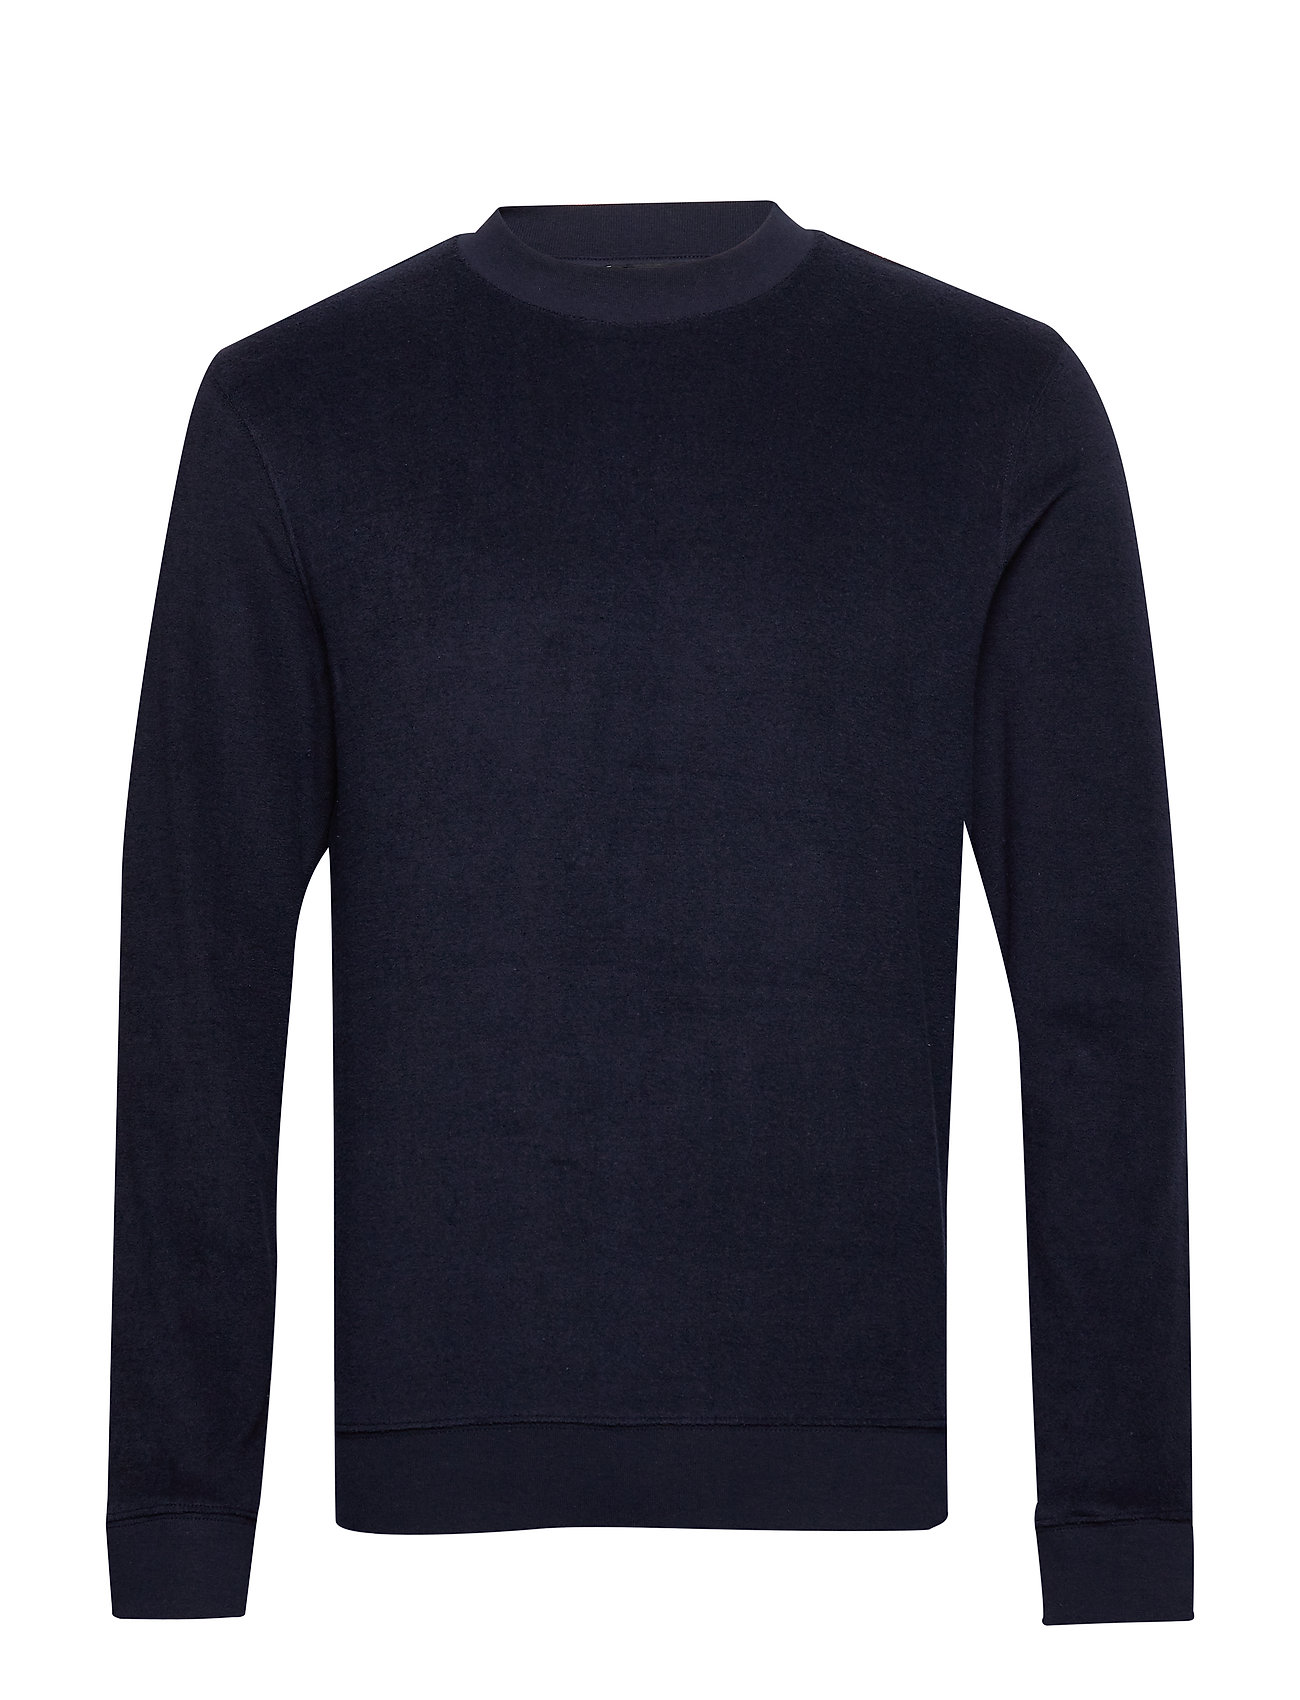 Selected Homme SLHCLEVE CREW NECK SWEAT B - SKY CAPTAIN